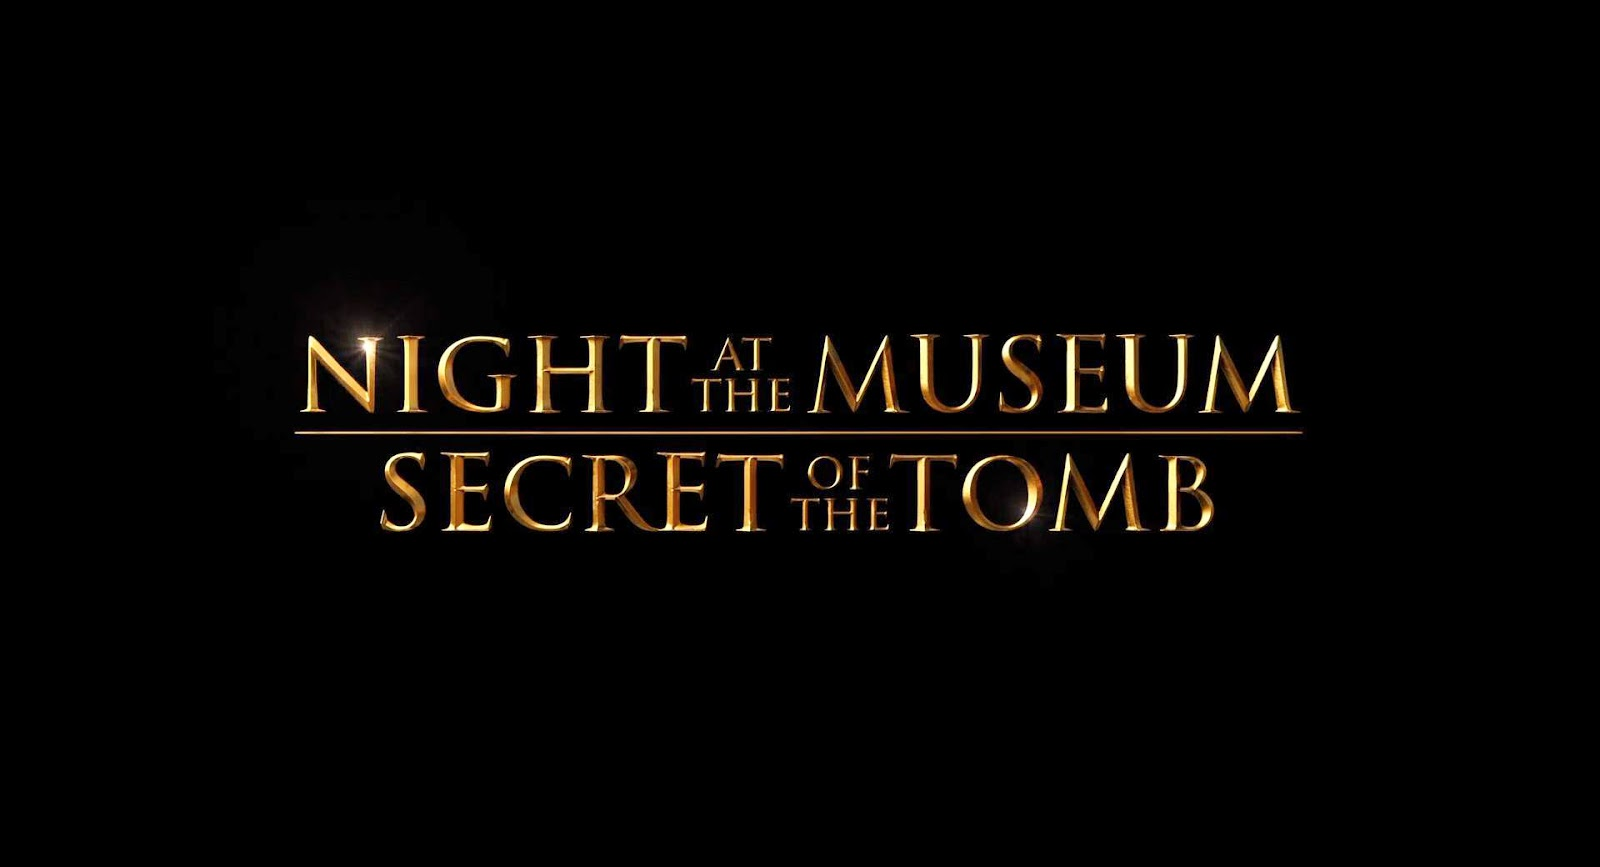 Night at the Museum: Secret of the Tomb (2014) S2 s Night at the Museum: Secret of the Tomb (2014)